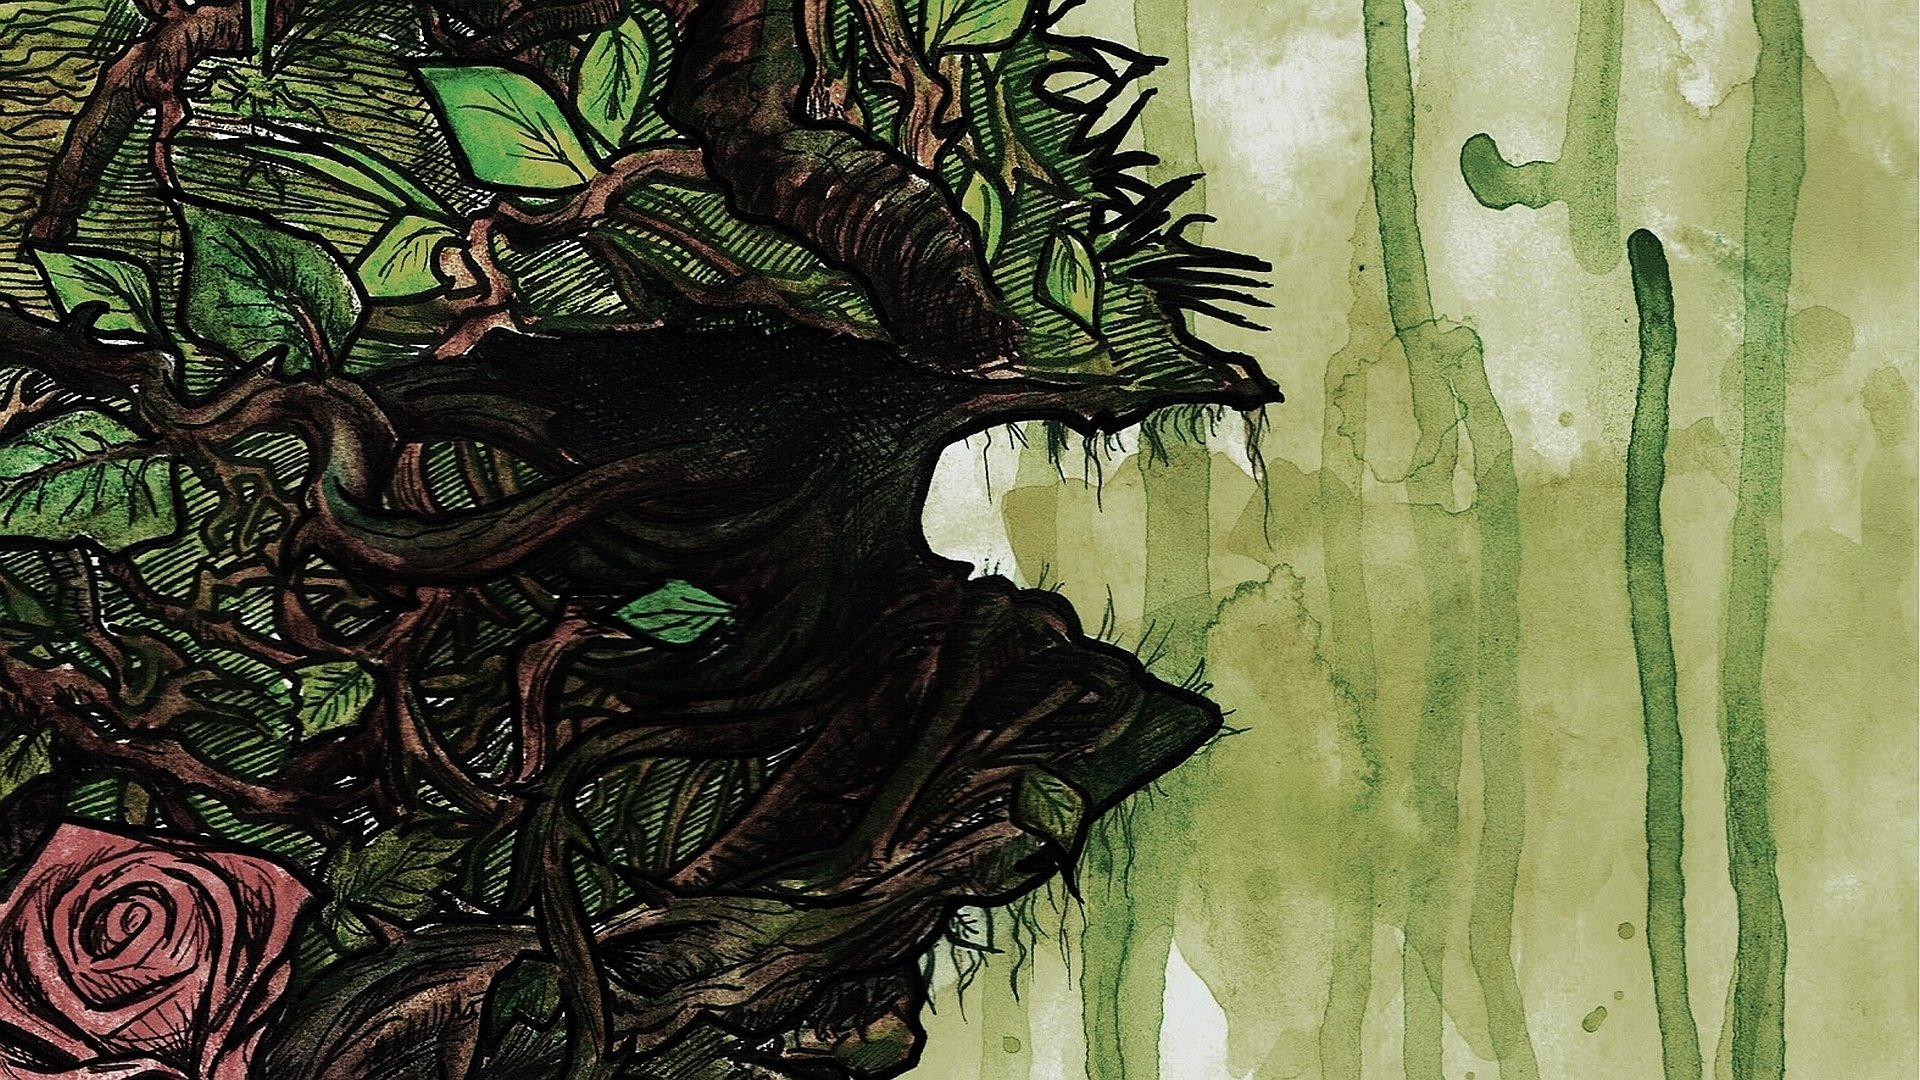 Swamp Thing Hd Wallpaper Background Image 1920x1080 Id 470529 Wallpaper Abyss